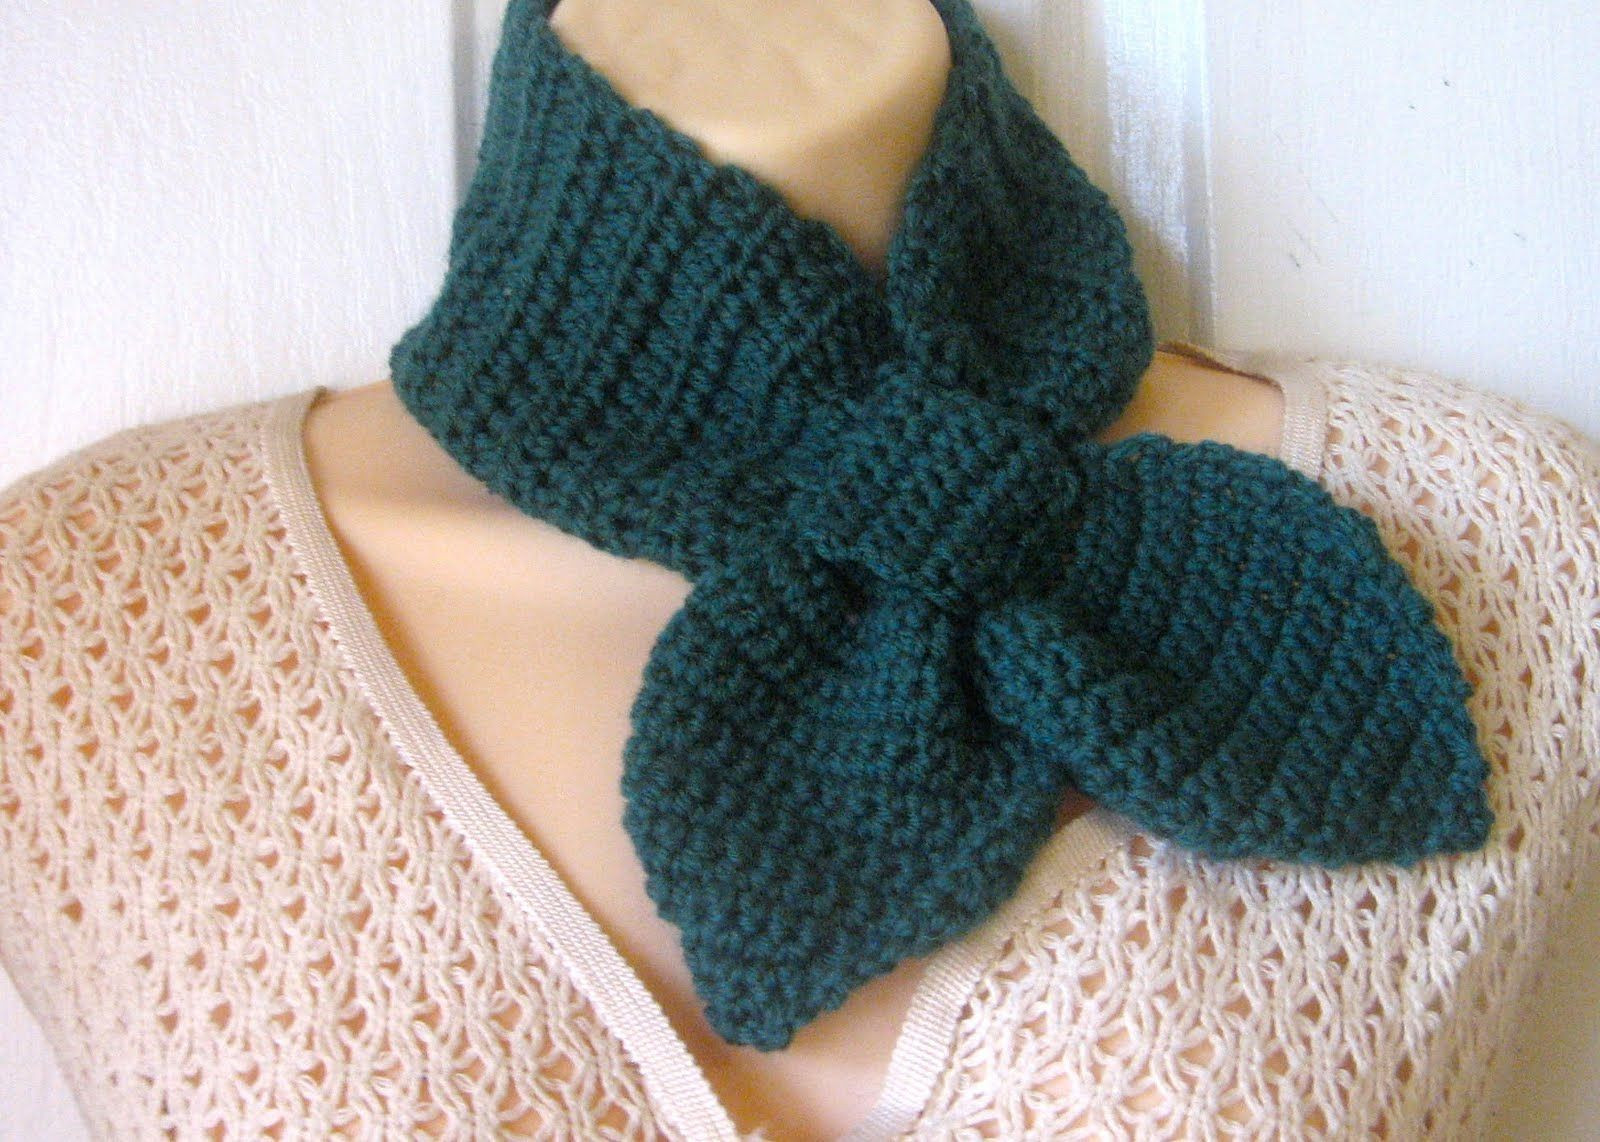 Crochet Neck Scarf Awesome Free Crochet Neck Warmer Pattern Of Great 50 Ideas Crochet Neck Scarf